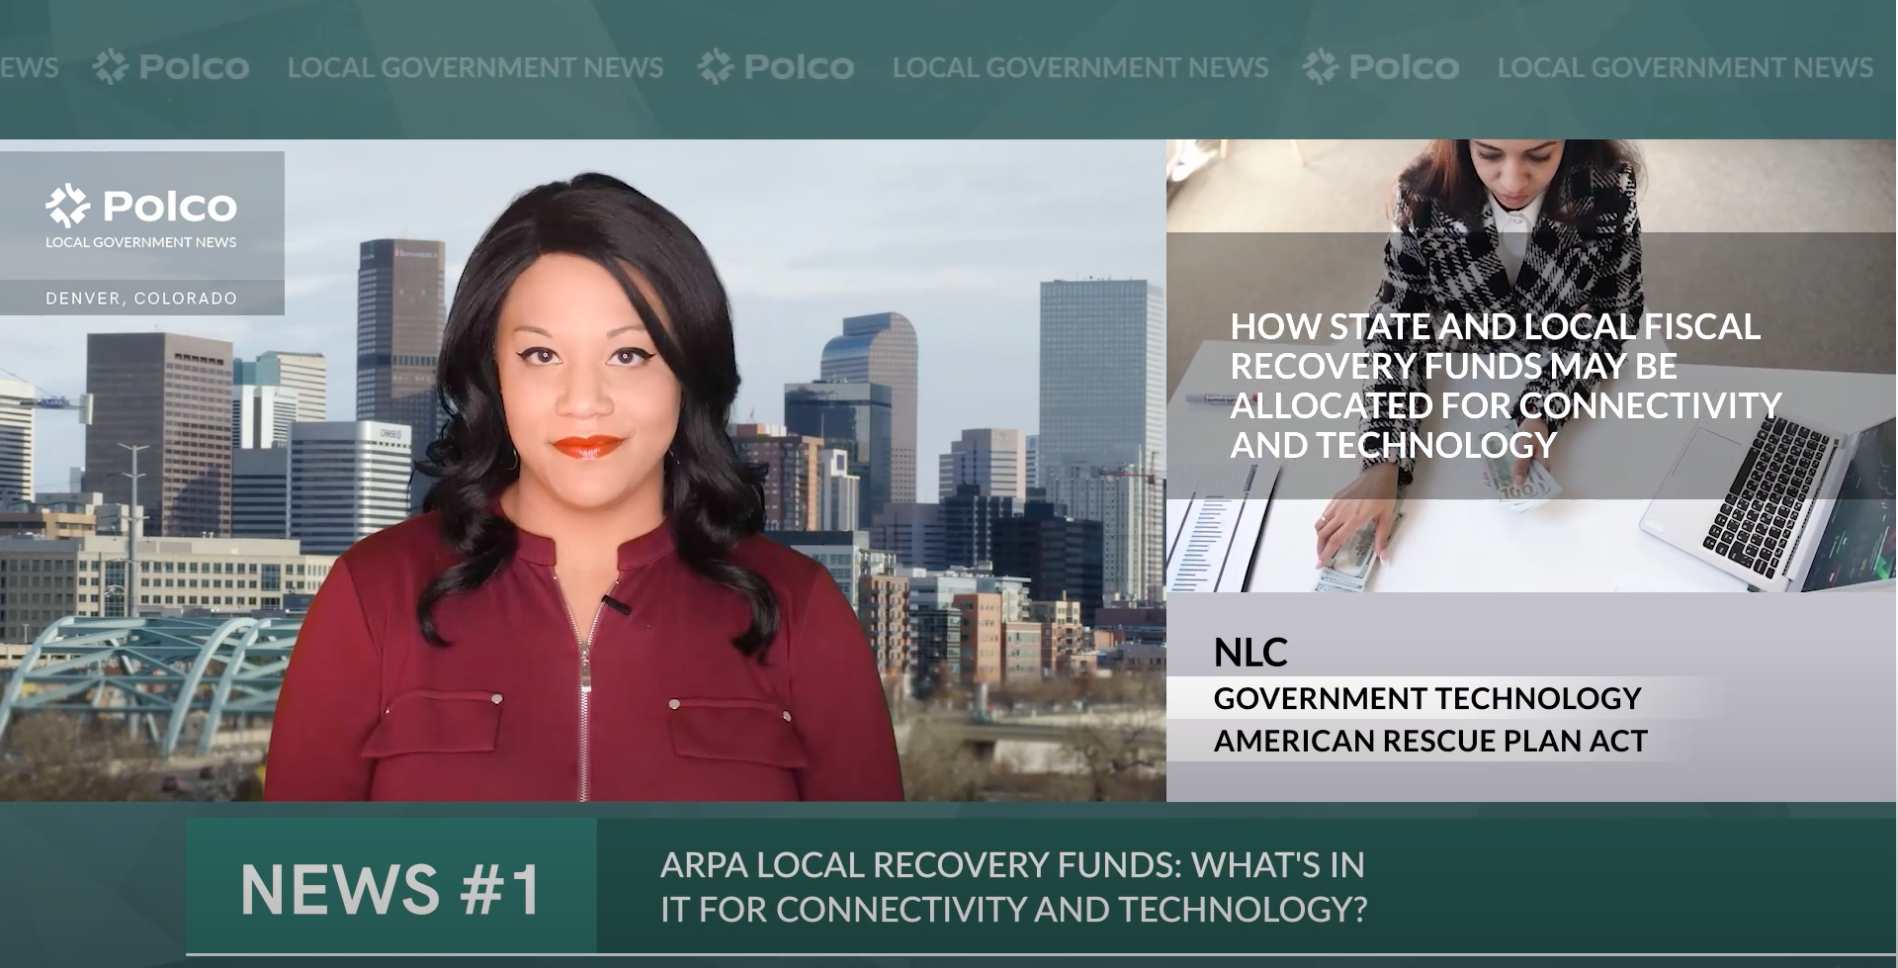 ARPA Local Recovery Funds: What's In It for Connectivity and Technology